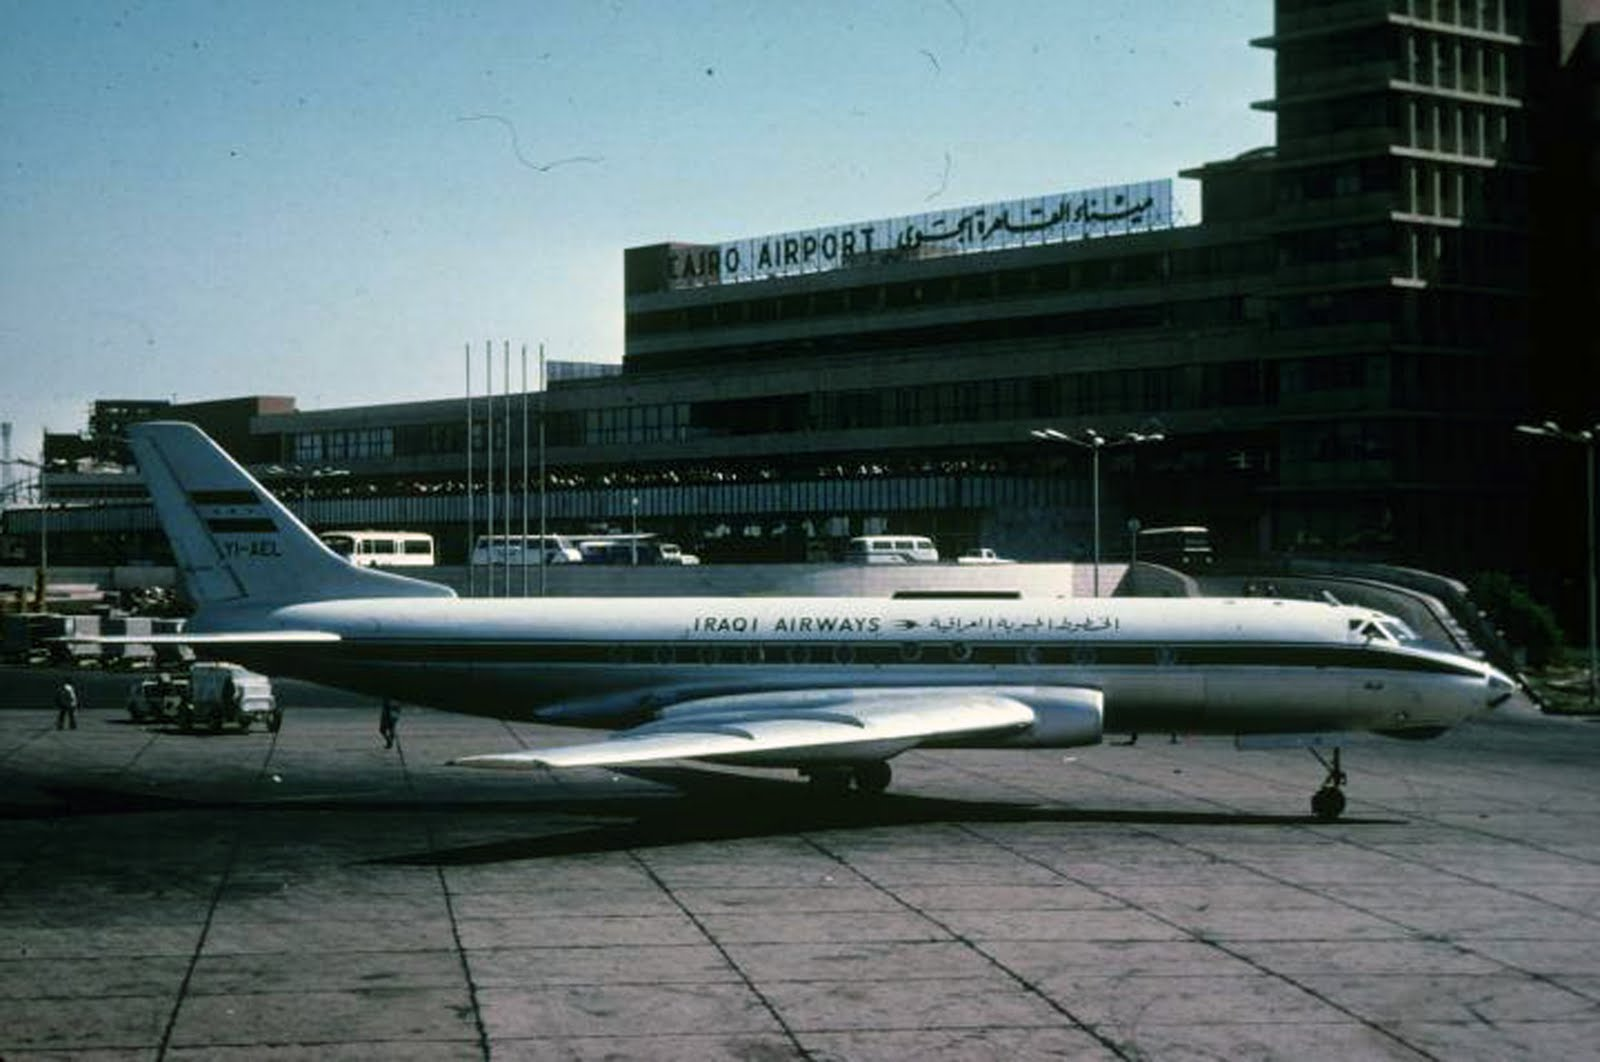 TU-124 YI-AEL IRAQI AIRWAYS EL CAIRO